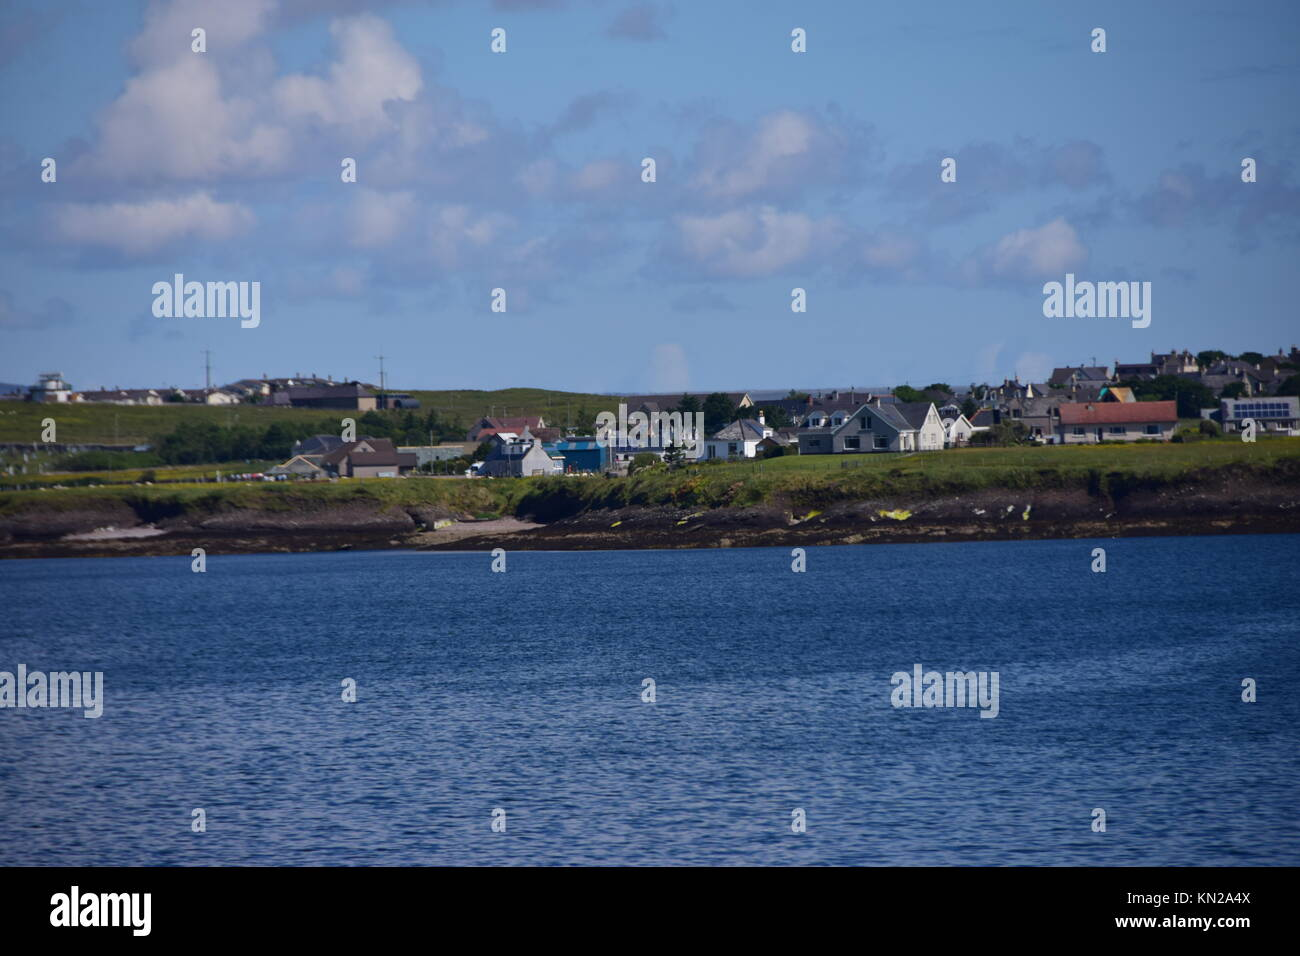 Arriving in Stornoway from sea. Coastal views and perspective. Isle of Lewis, Outer Hebrides of Scotland - Stock Image